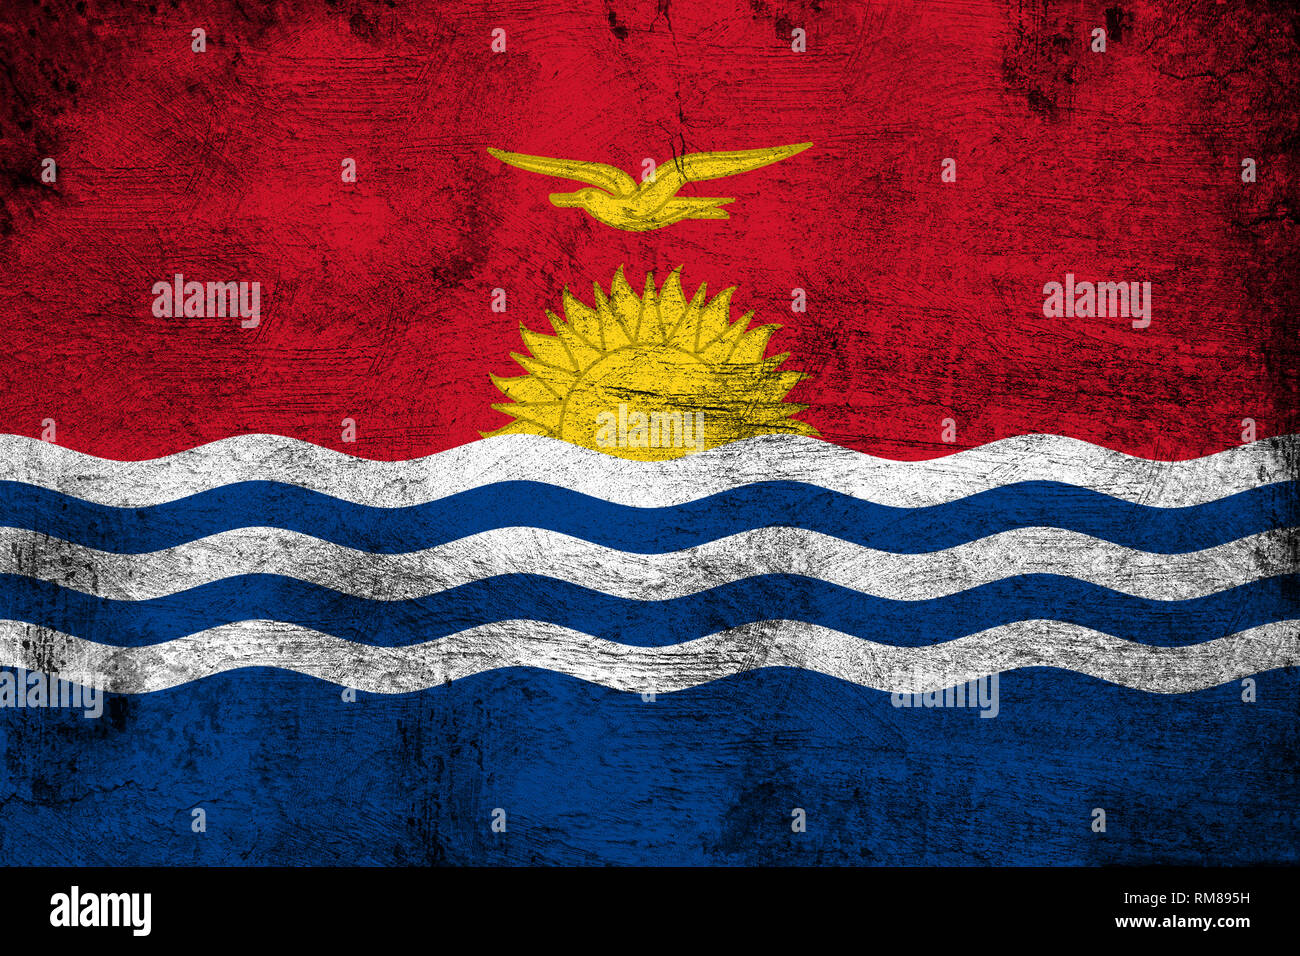 Kiribati grunge and dirty flag illustration. Perfect for background or texture purposes. - Stock Image